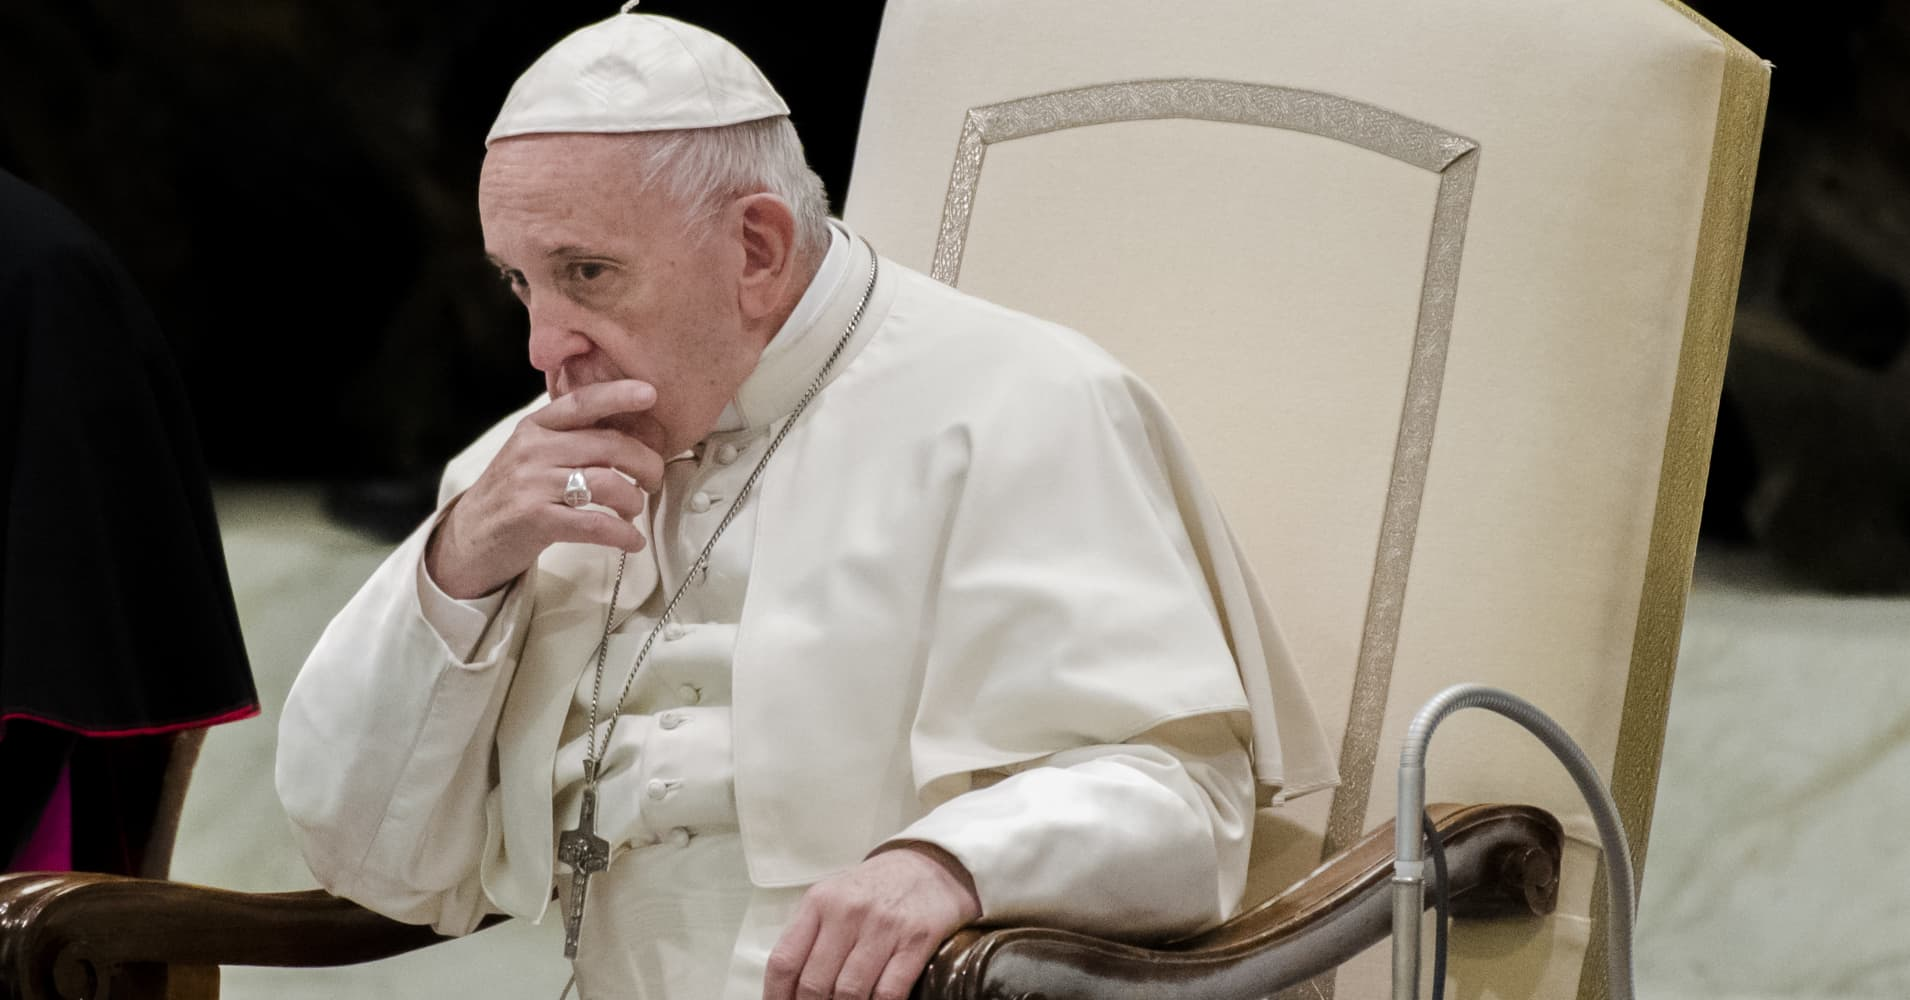 Pope Francis on immigration: Political leaders 'risk becoming prisoners of the walls they build'